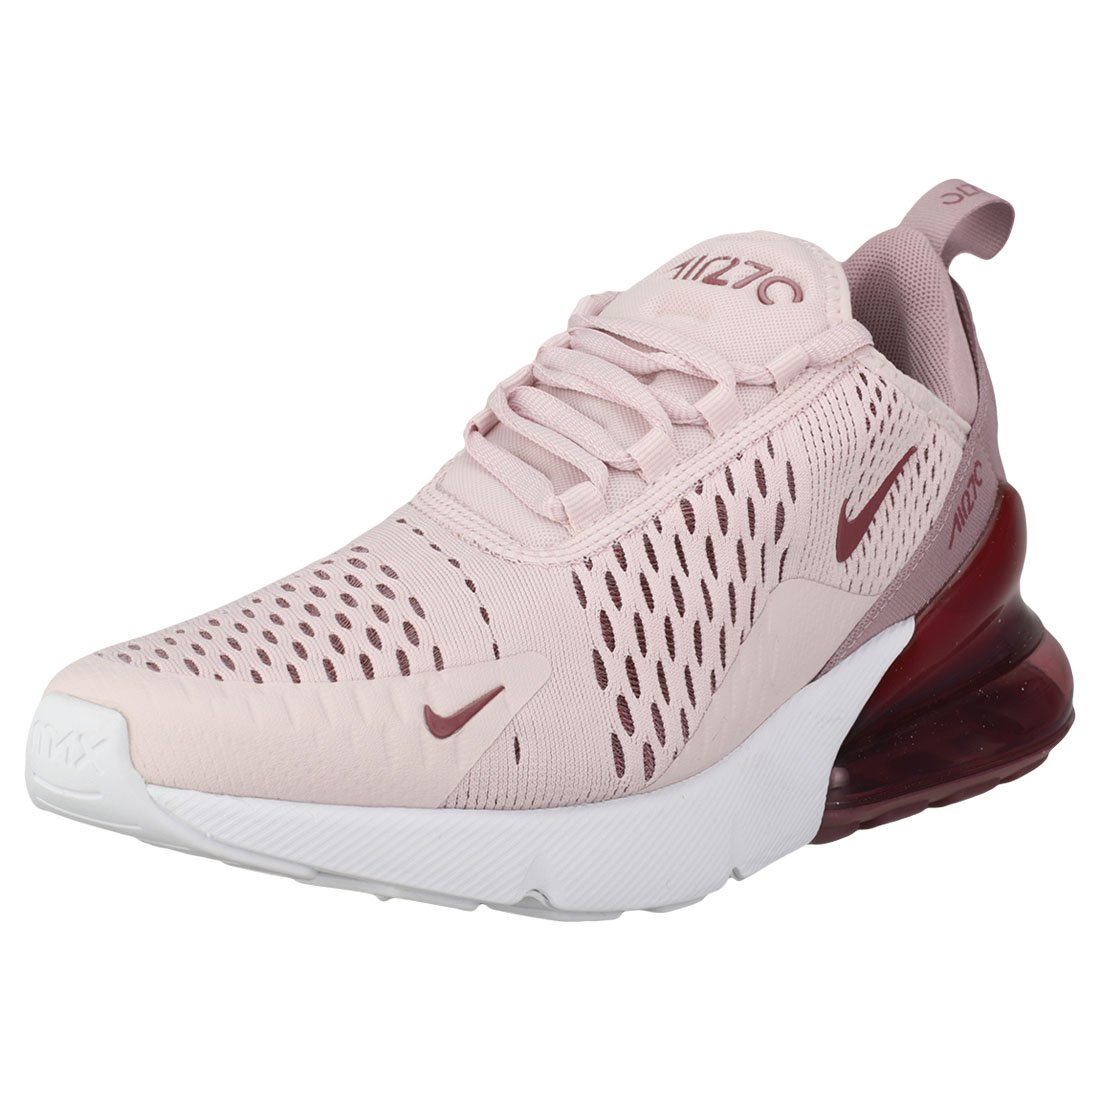 0e512f183a Galleon - Nike Women's Air Max 270 Barely Rose AH6789-601 (Size: 8)